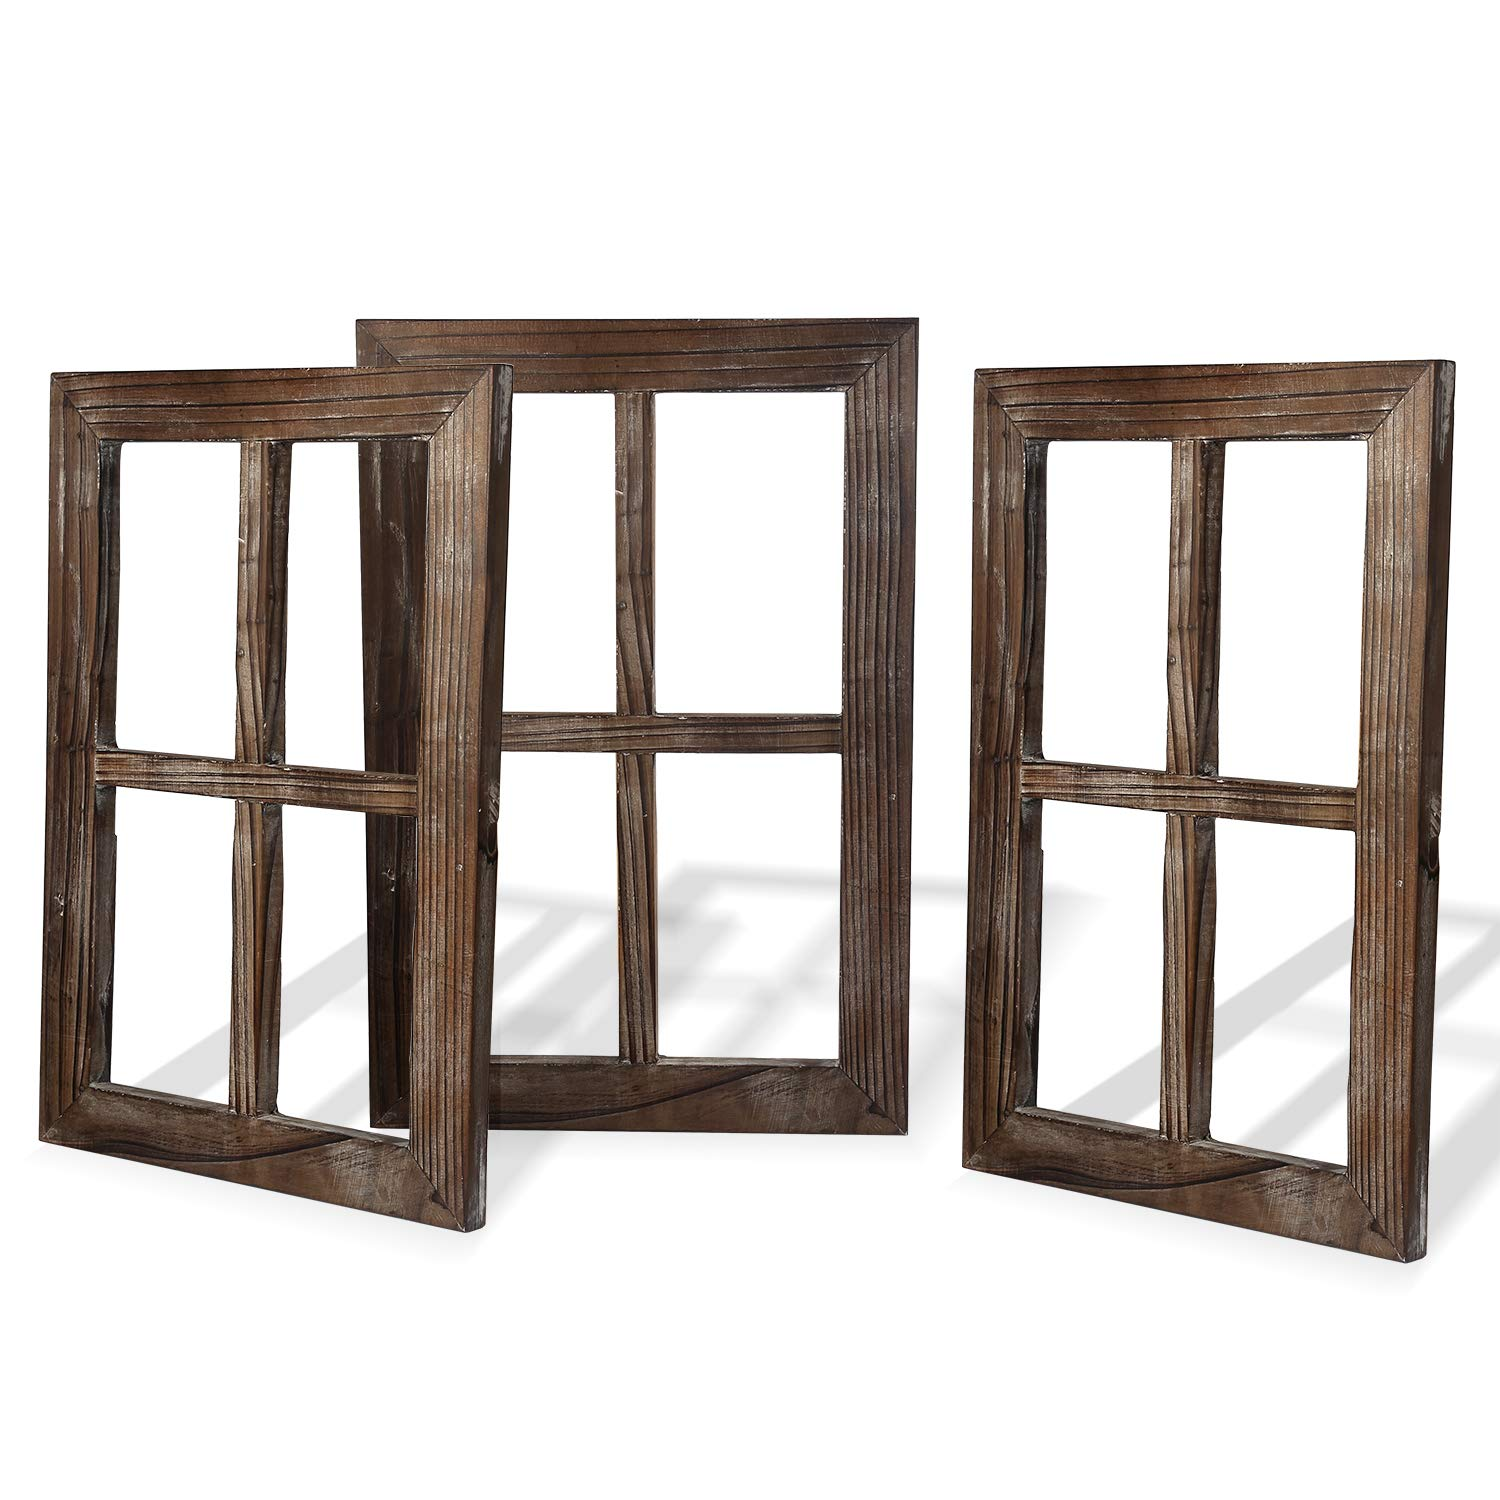 Cade Rustic Wall Decor-Home Decor Window Barnwood Frames -Room Decor for Home or Outdoor, Not for Pictures (3, 11X15.8 inch)